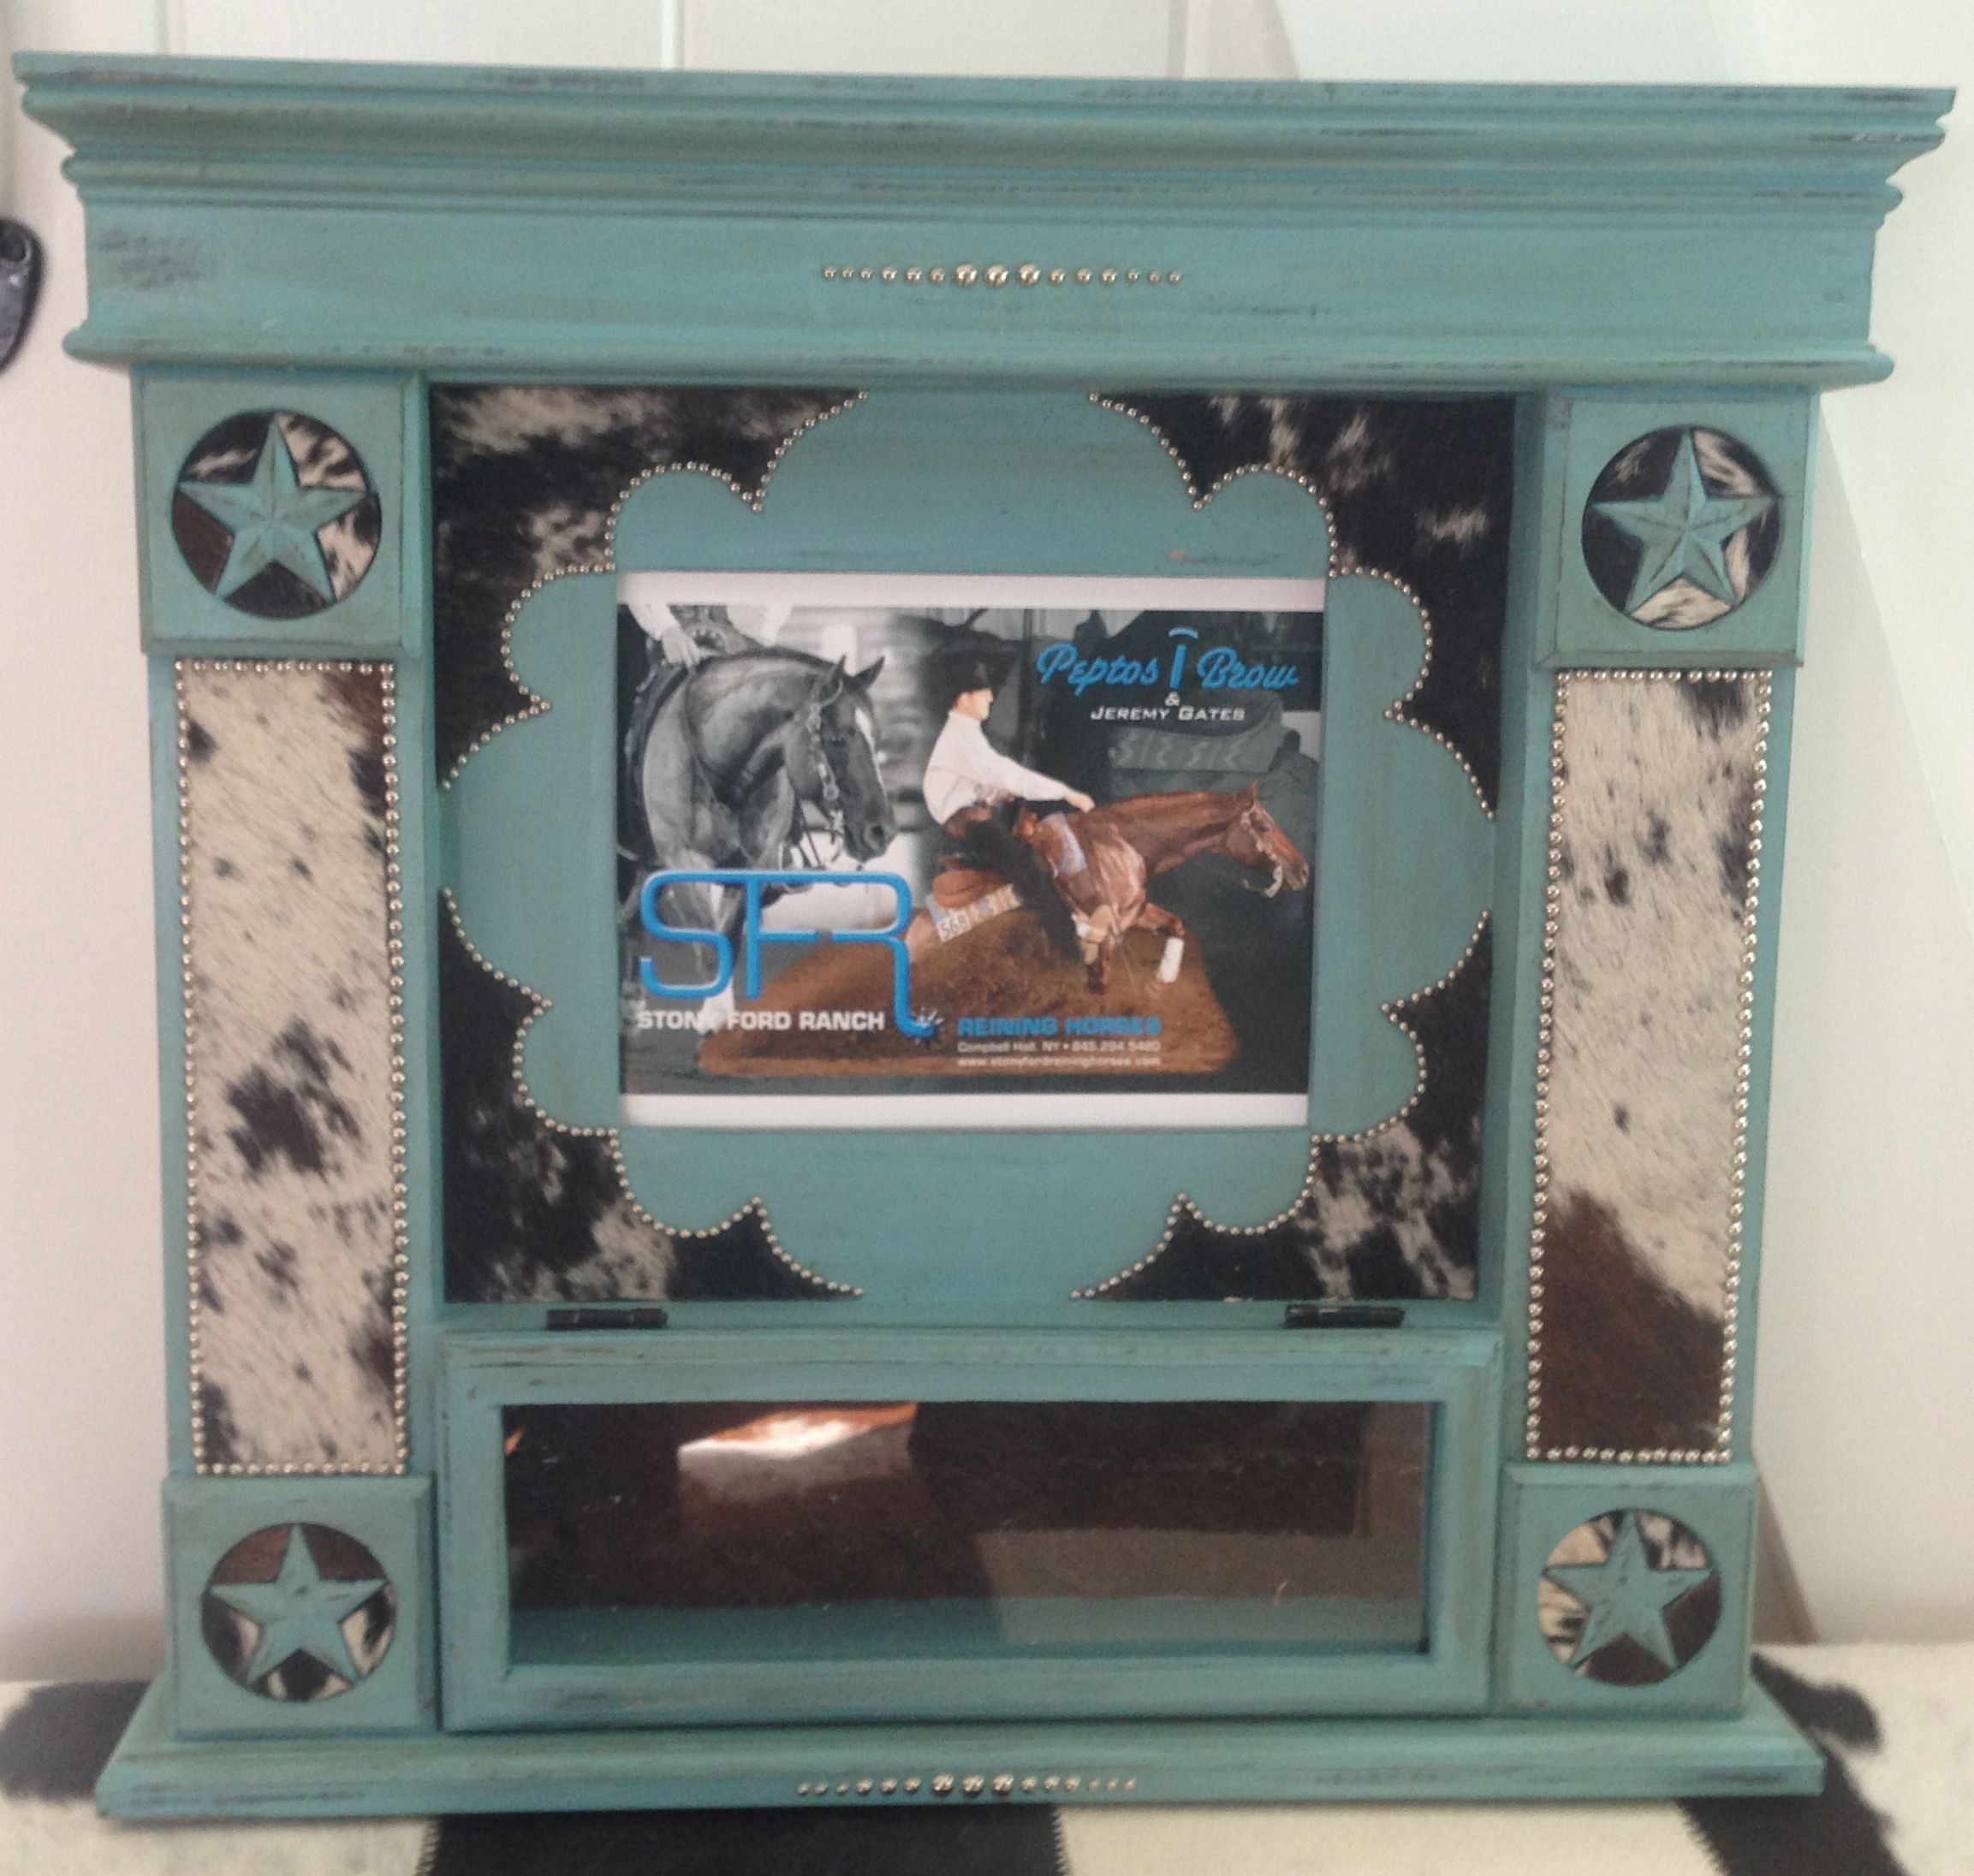 Trophy belt buckle case. 8x10 picture frame with cowhide & western ...